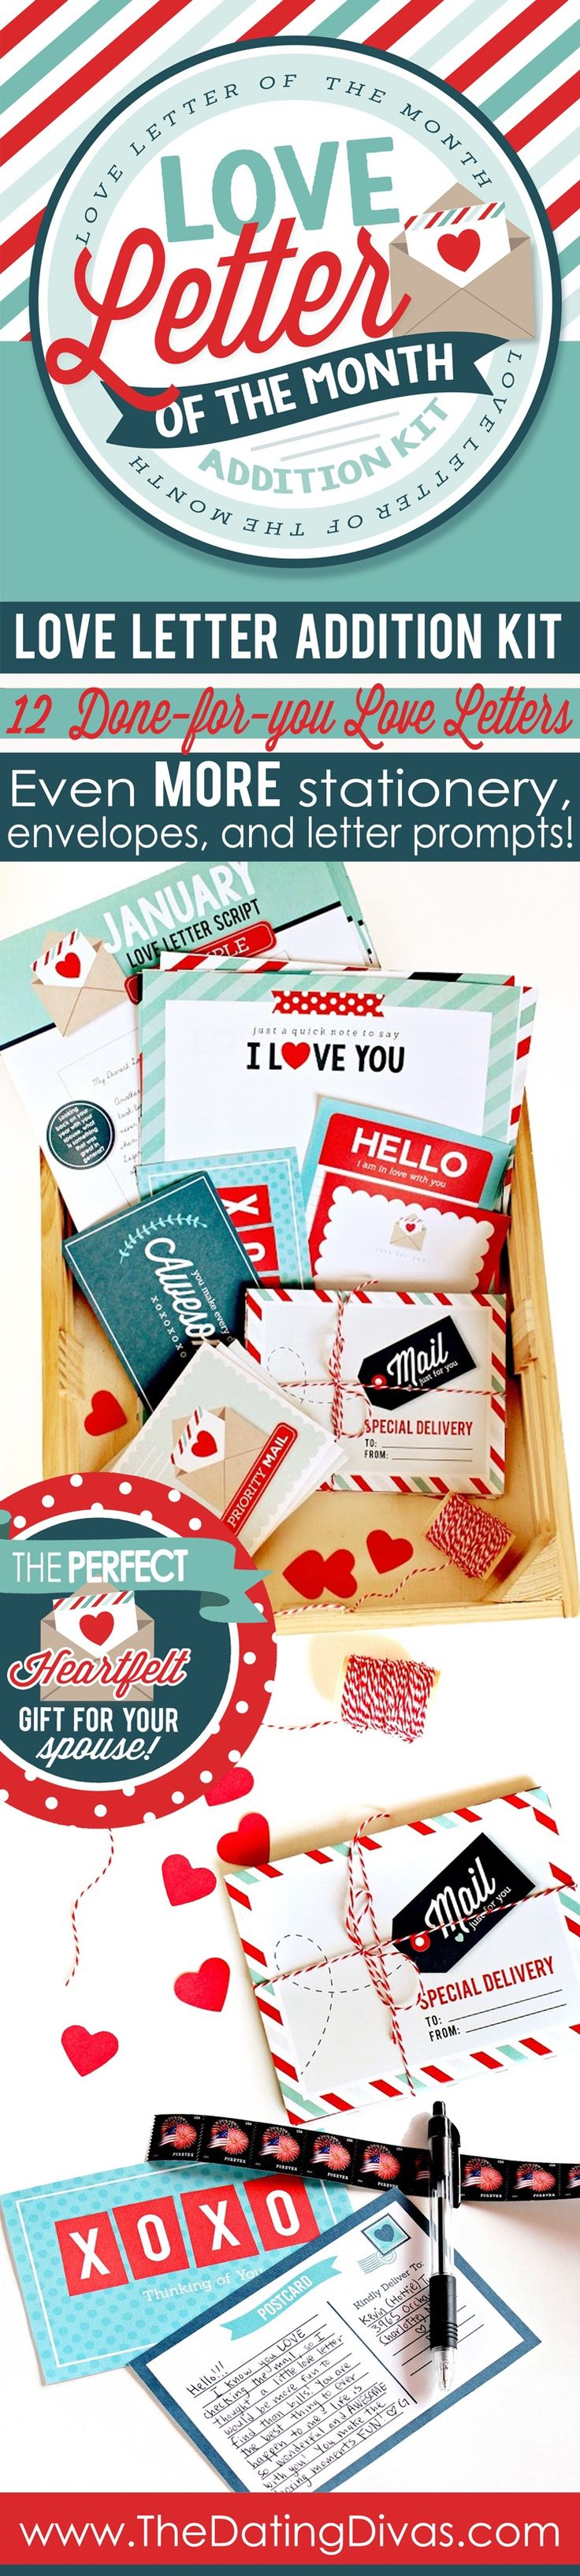 from Kenny pinterest dating gift ideas